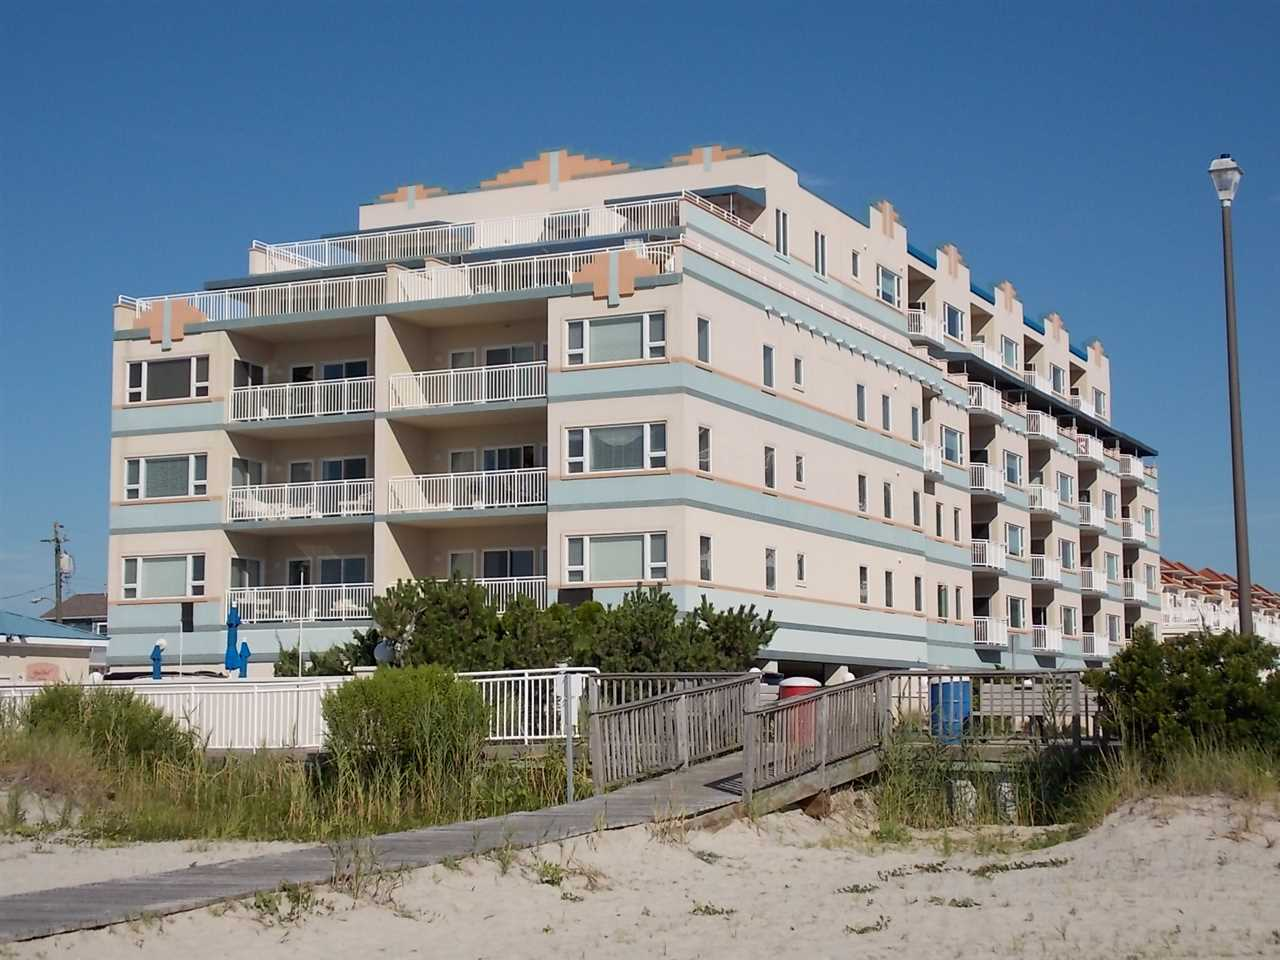 450, Unit 205 Nashville, Wildwood Crest